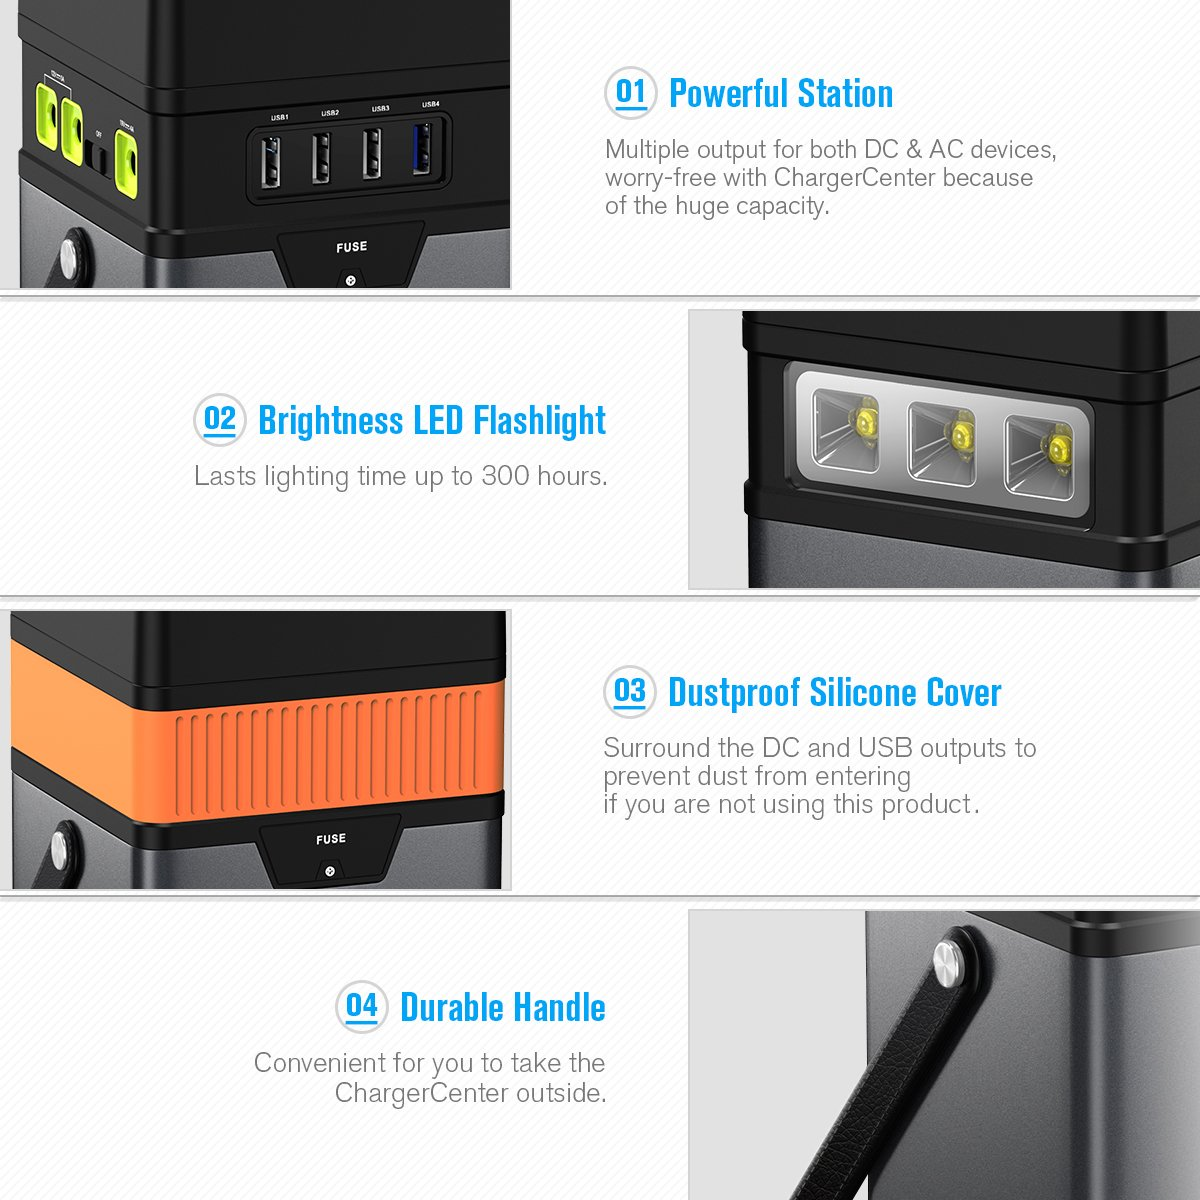 Poweradd ChargerCenterⅡ, Compact 370Wh/100000mAh Portable Generator, Power Source (DC 5V/12V/19V & 115V/AC Max 100W) Power Inverter for Smartphone, iPad, Tablet, Laptop and More